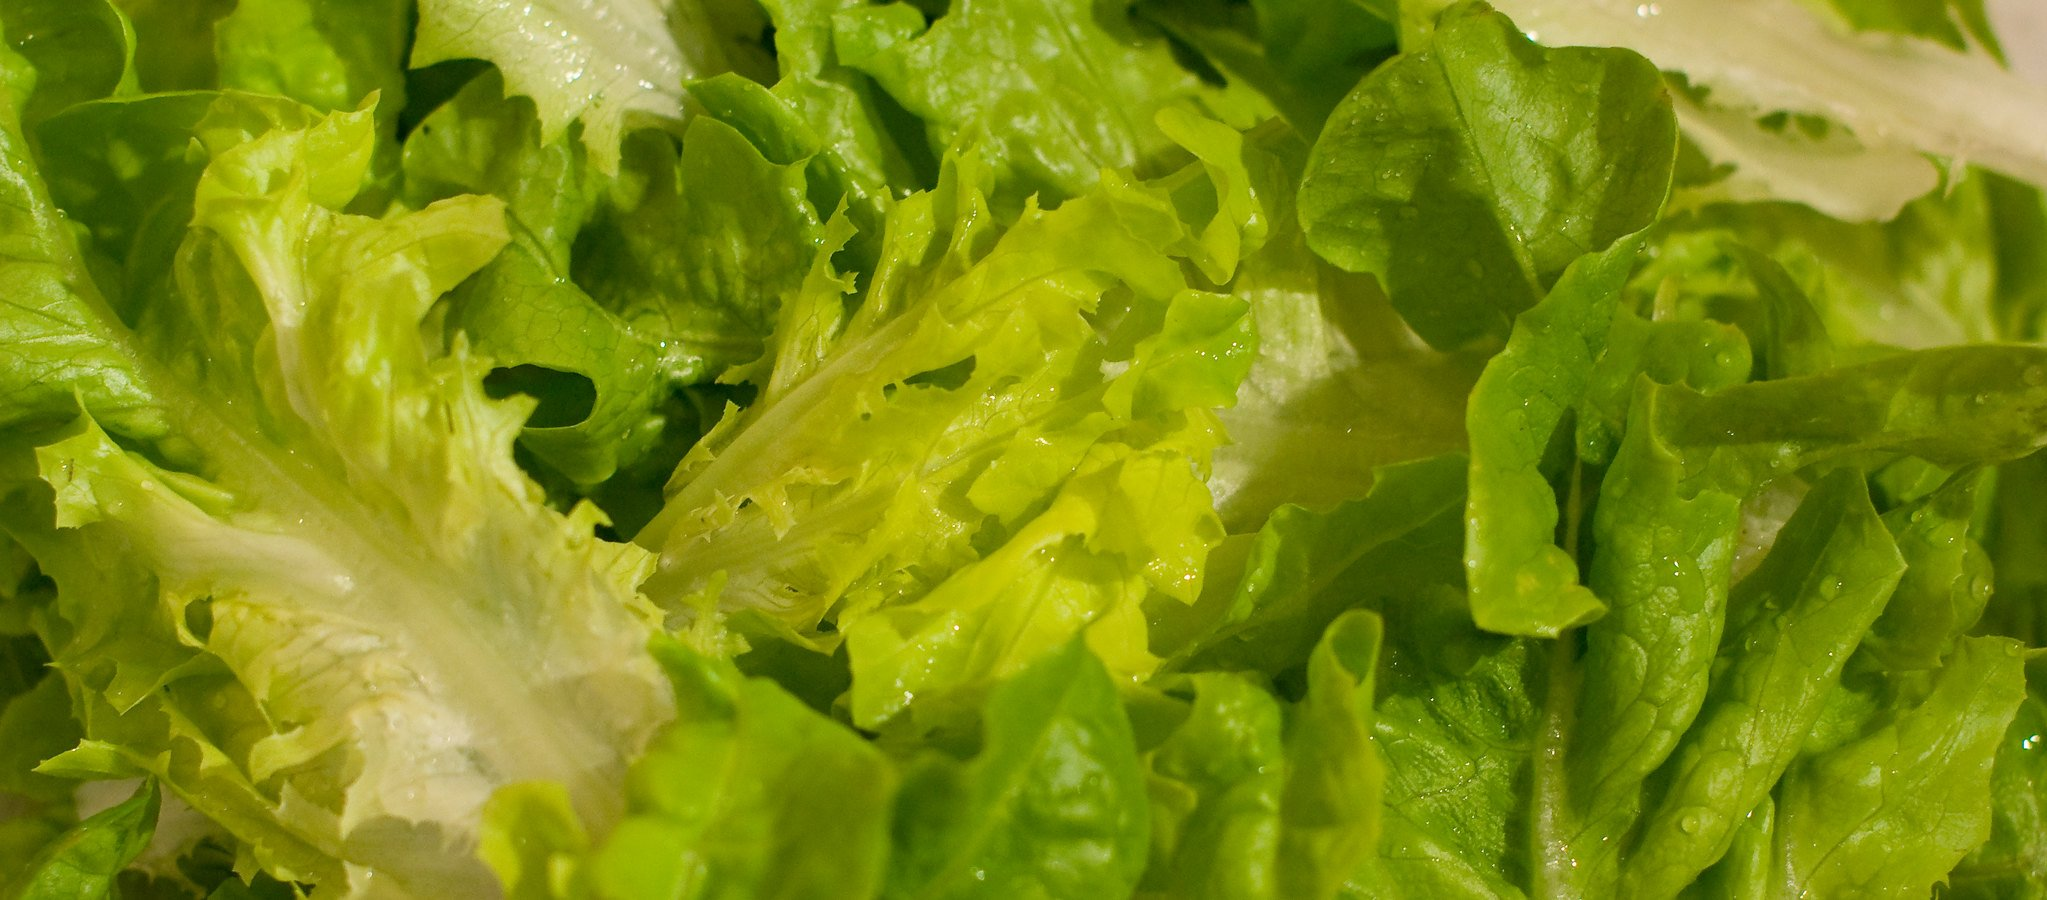 A photo of pieces of fresh, crisp green lettuce. Image taken on August 31, 2008   Photo: Flickr/Paul Tomlin